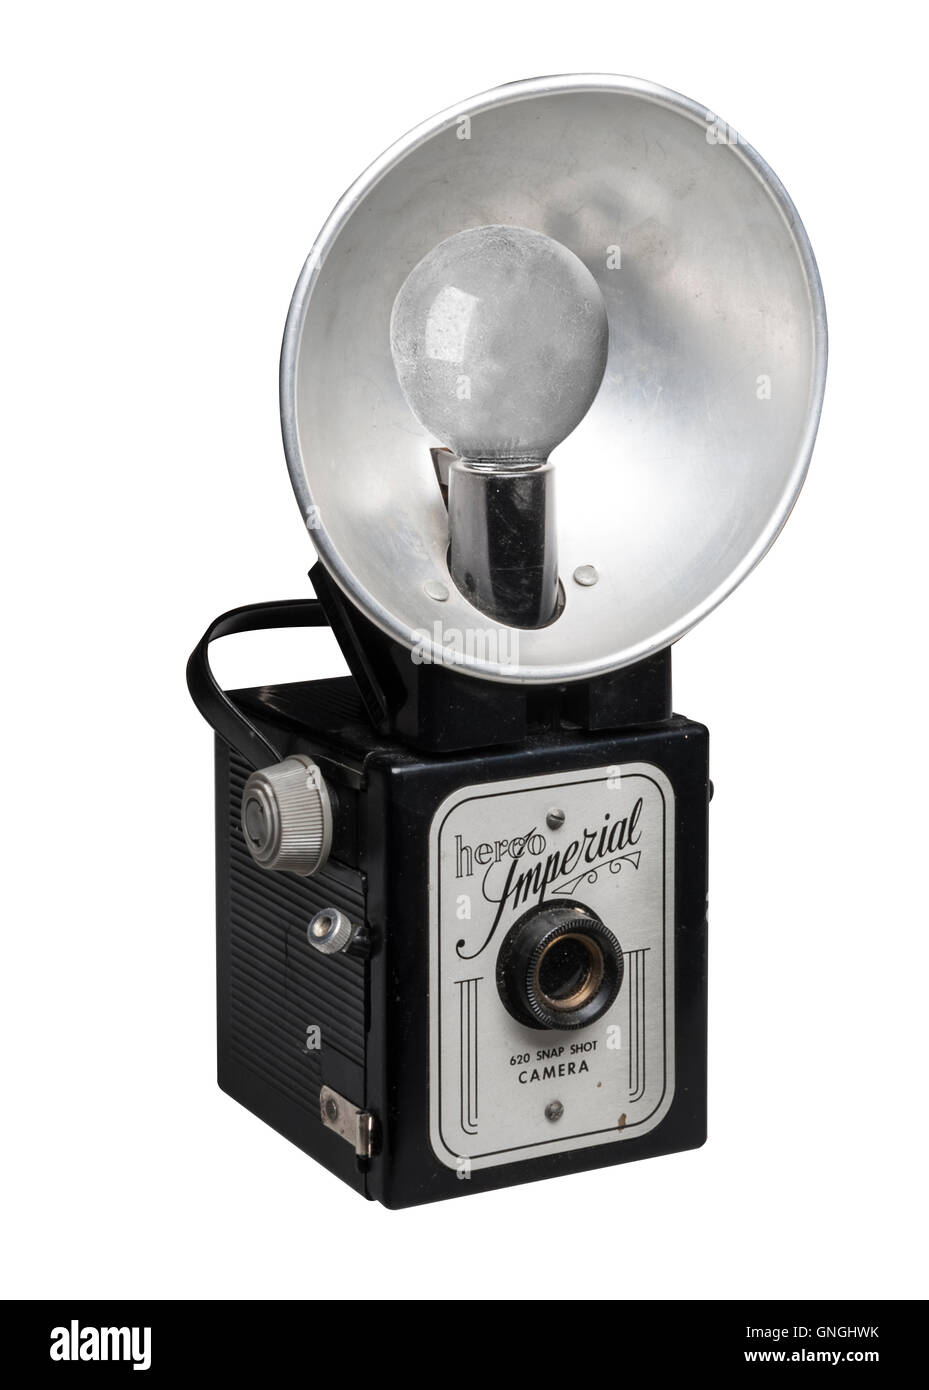 Mid-Century Herco Imperial Film Camera with Flash Bulb Attachment - Stock Image